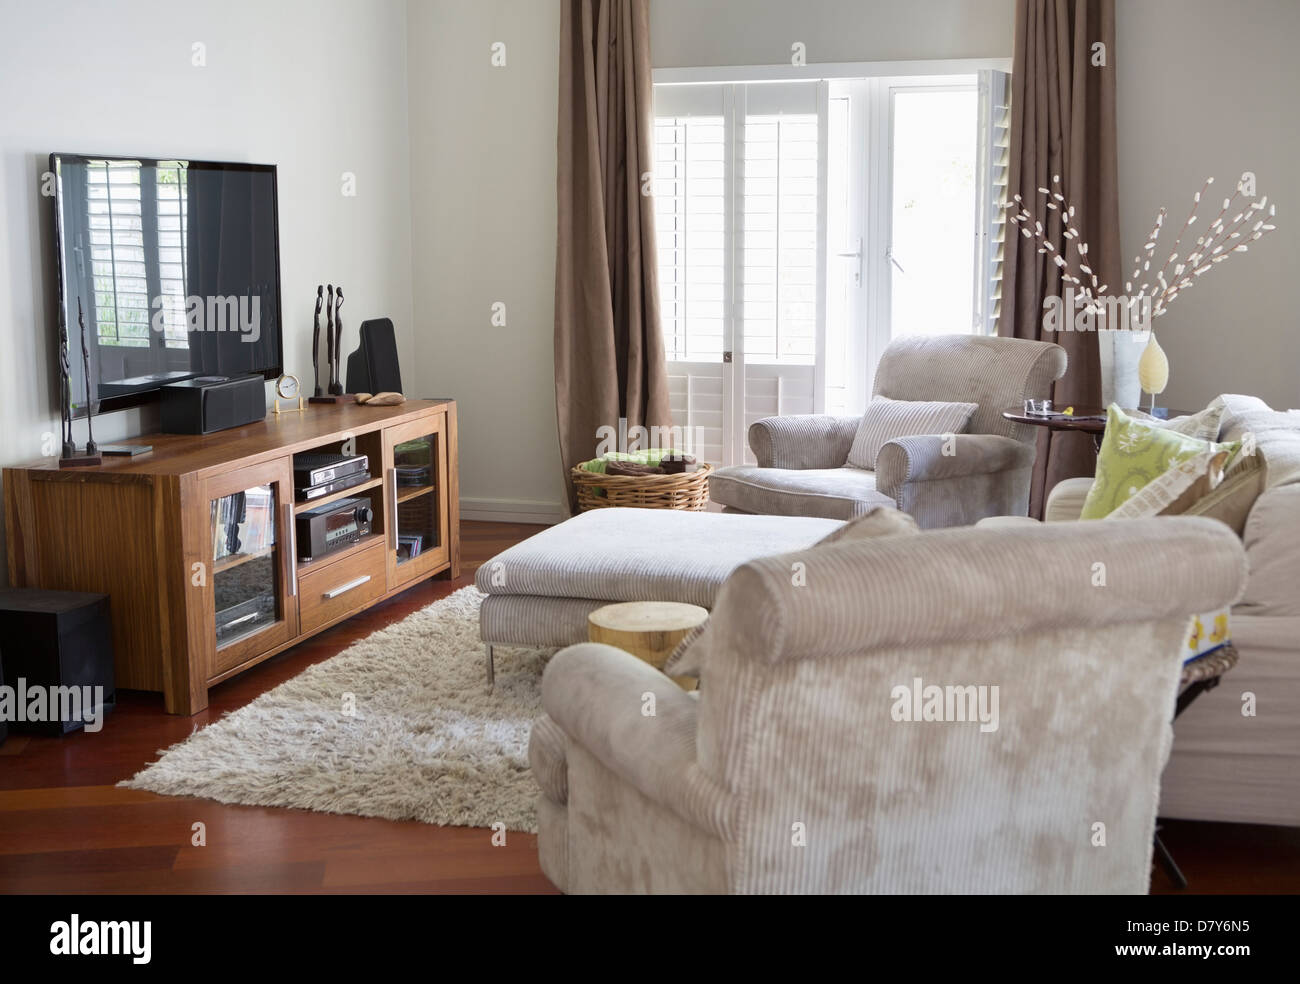 settee living room decorations for ideas tv stock photos television and armchairs in image